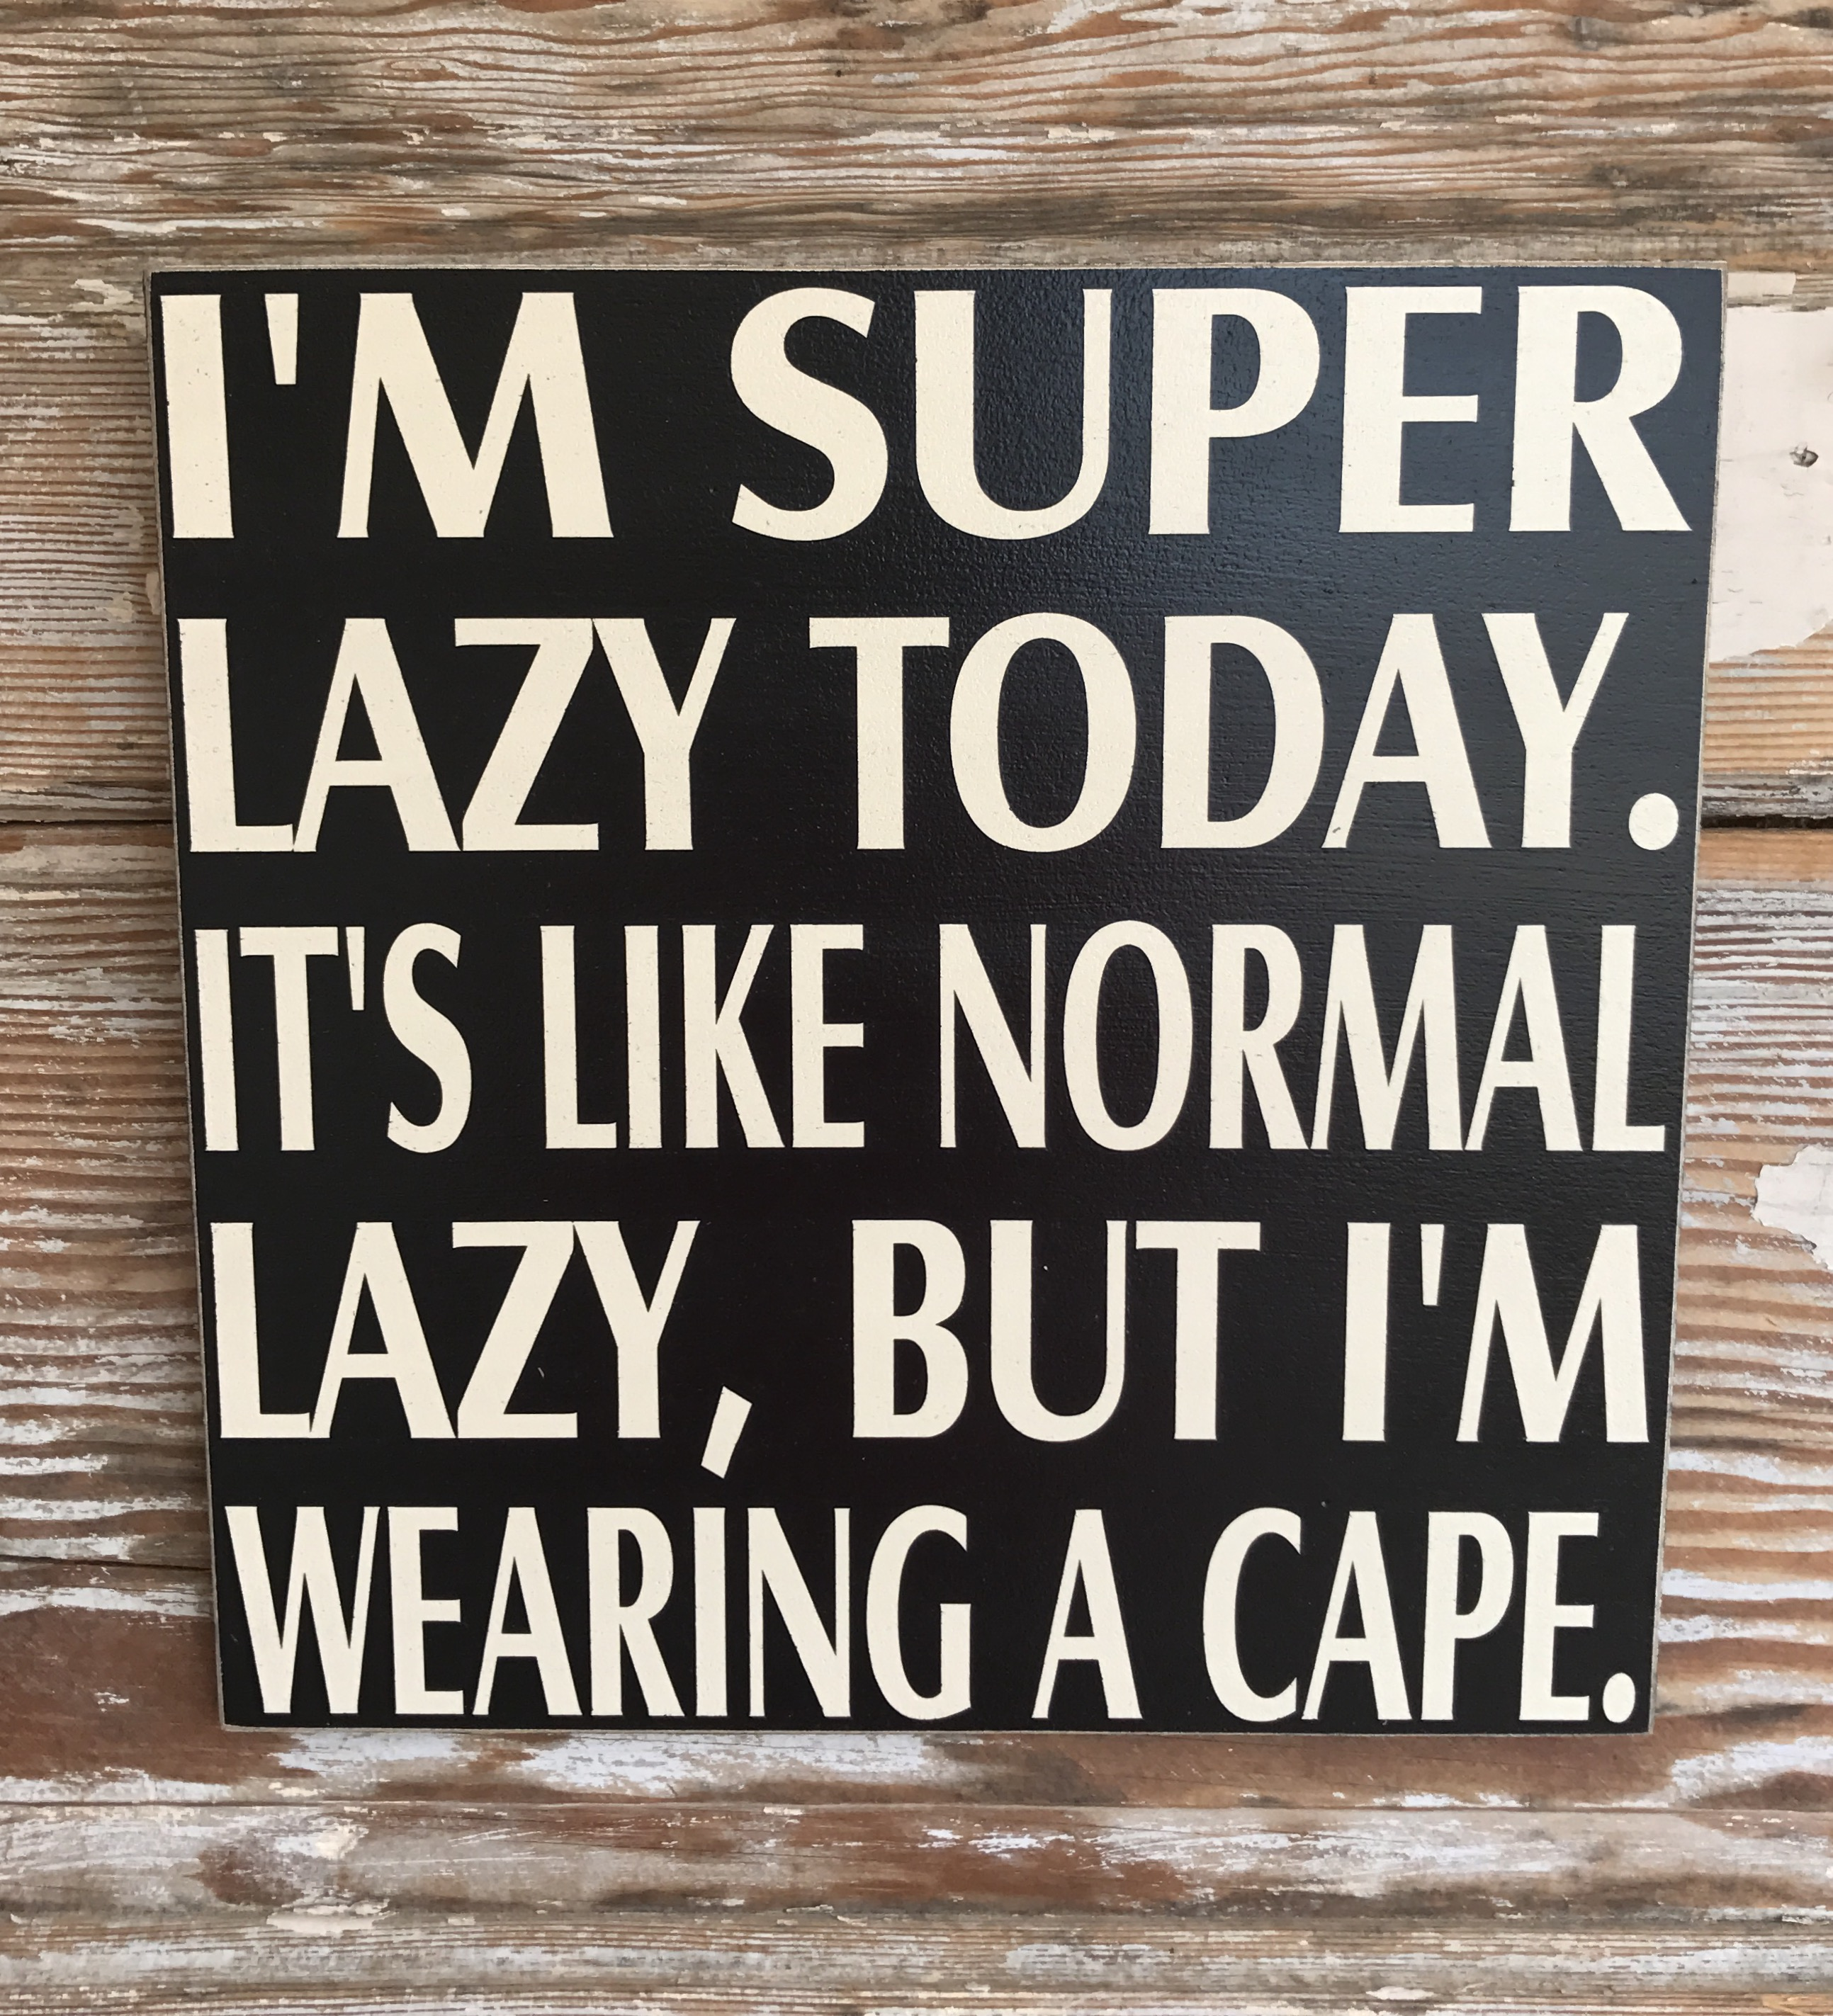 I'm Super Lazy Today.  It's Like Normal Lazy, But I'm Wearing A Cape.  Wood Sign